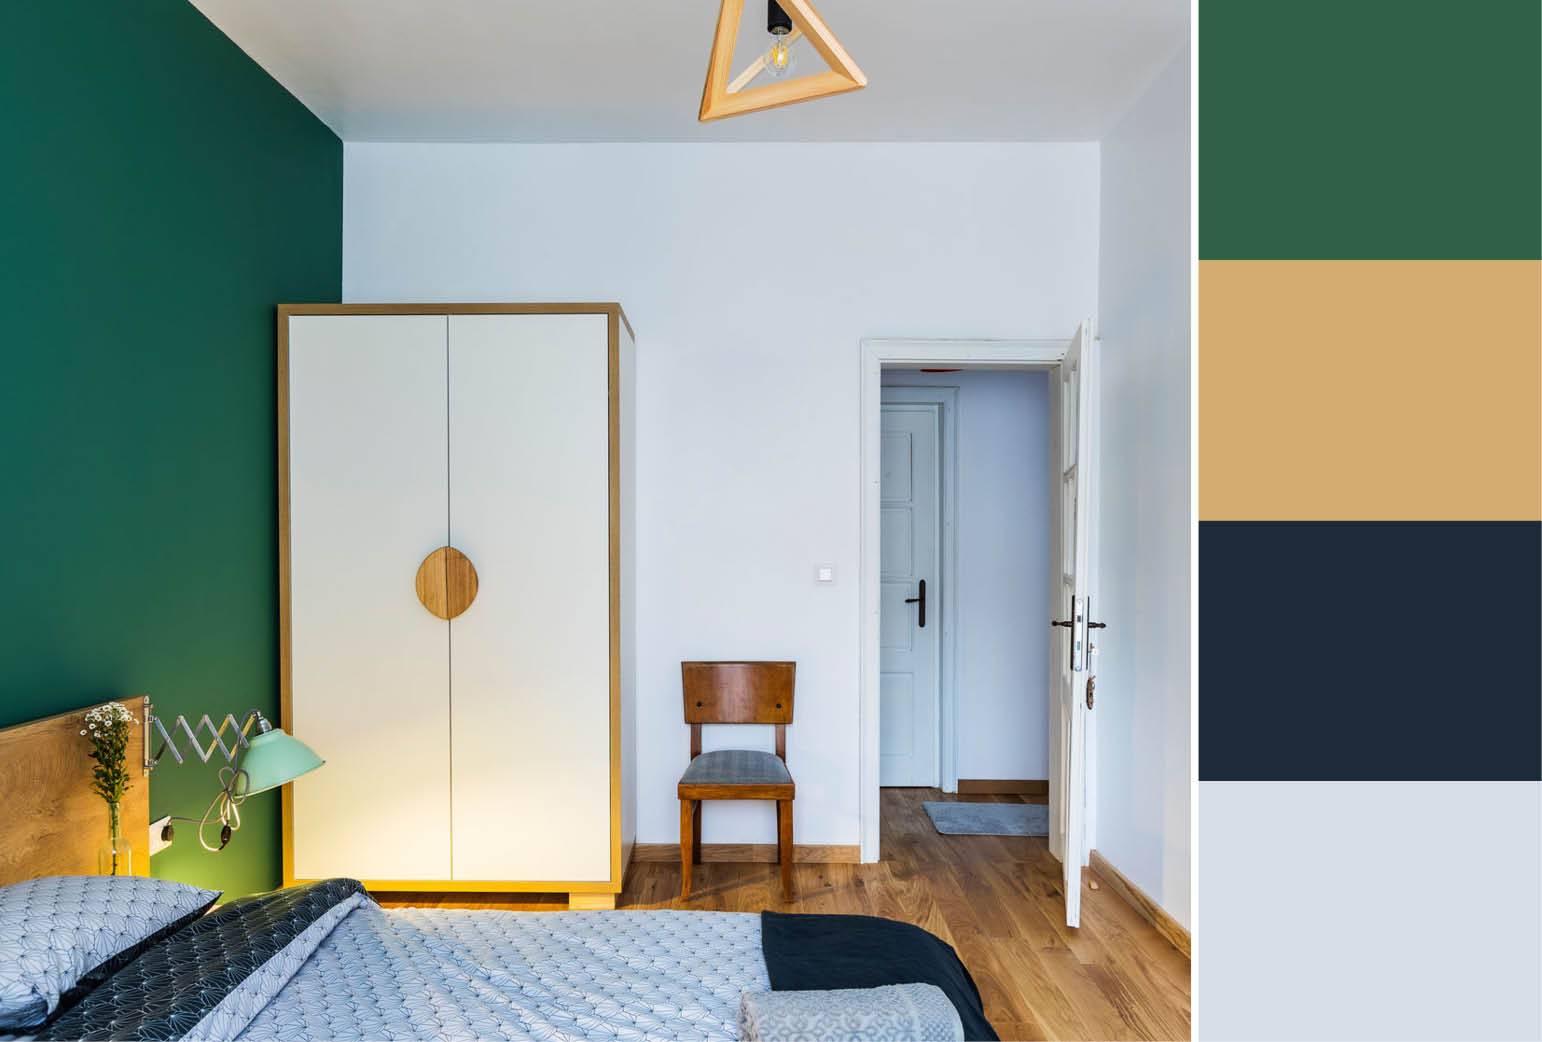 Green Accent Wall 30 Accent Wall Color Combinations To Match Any Style